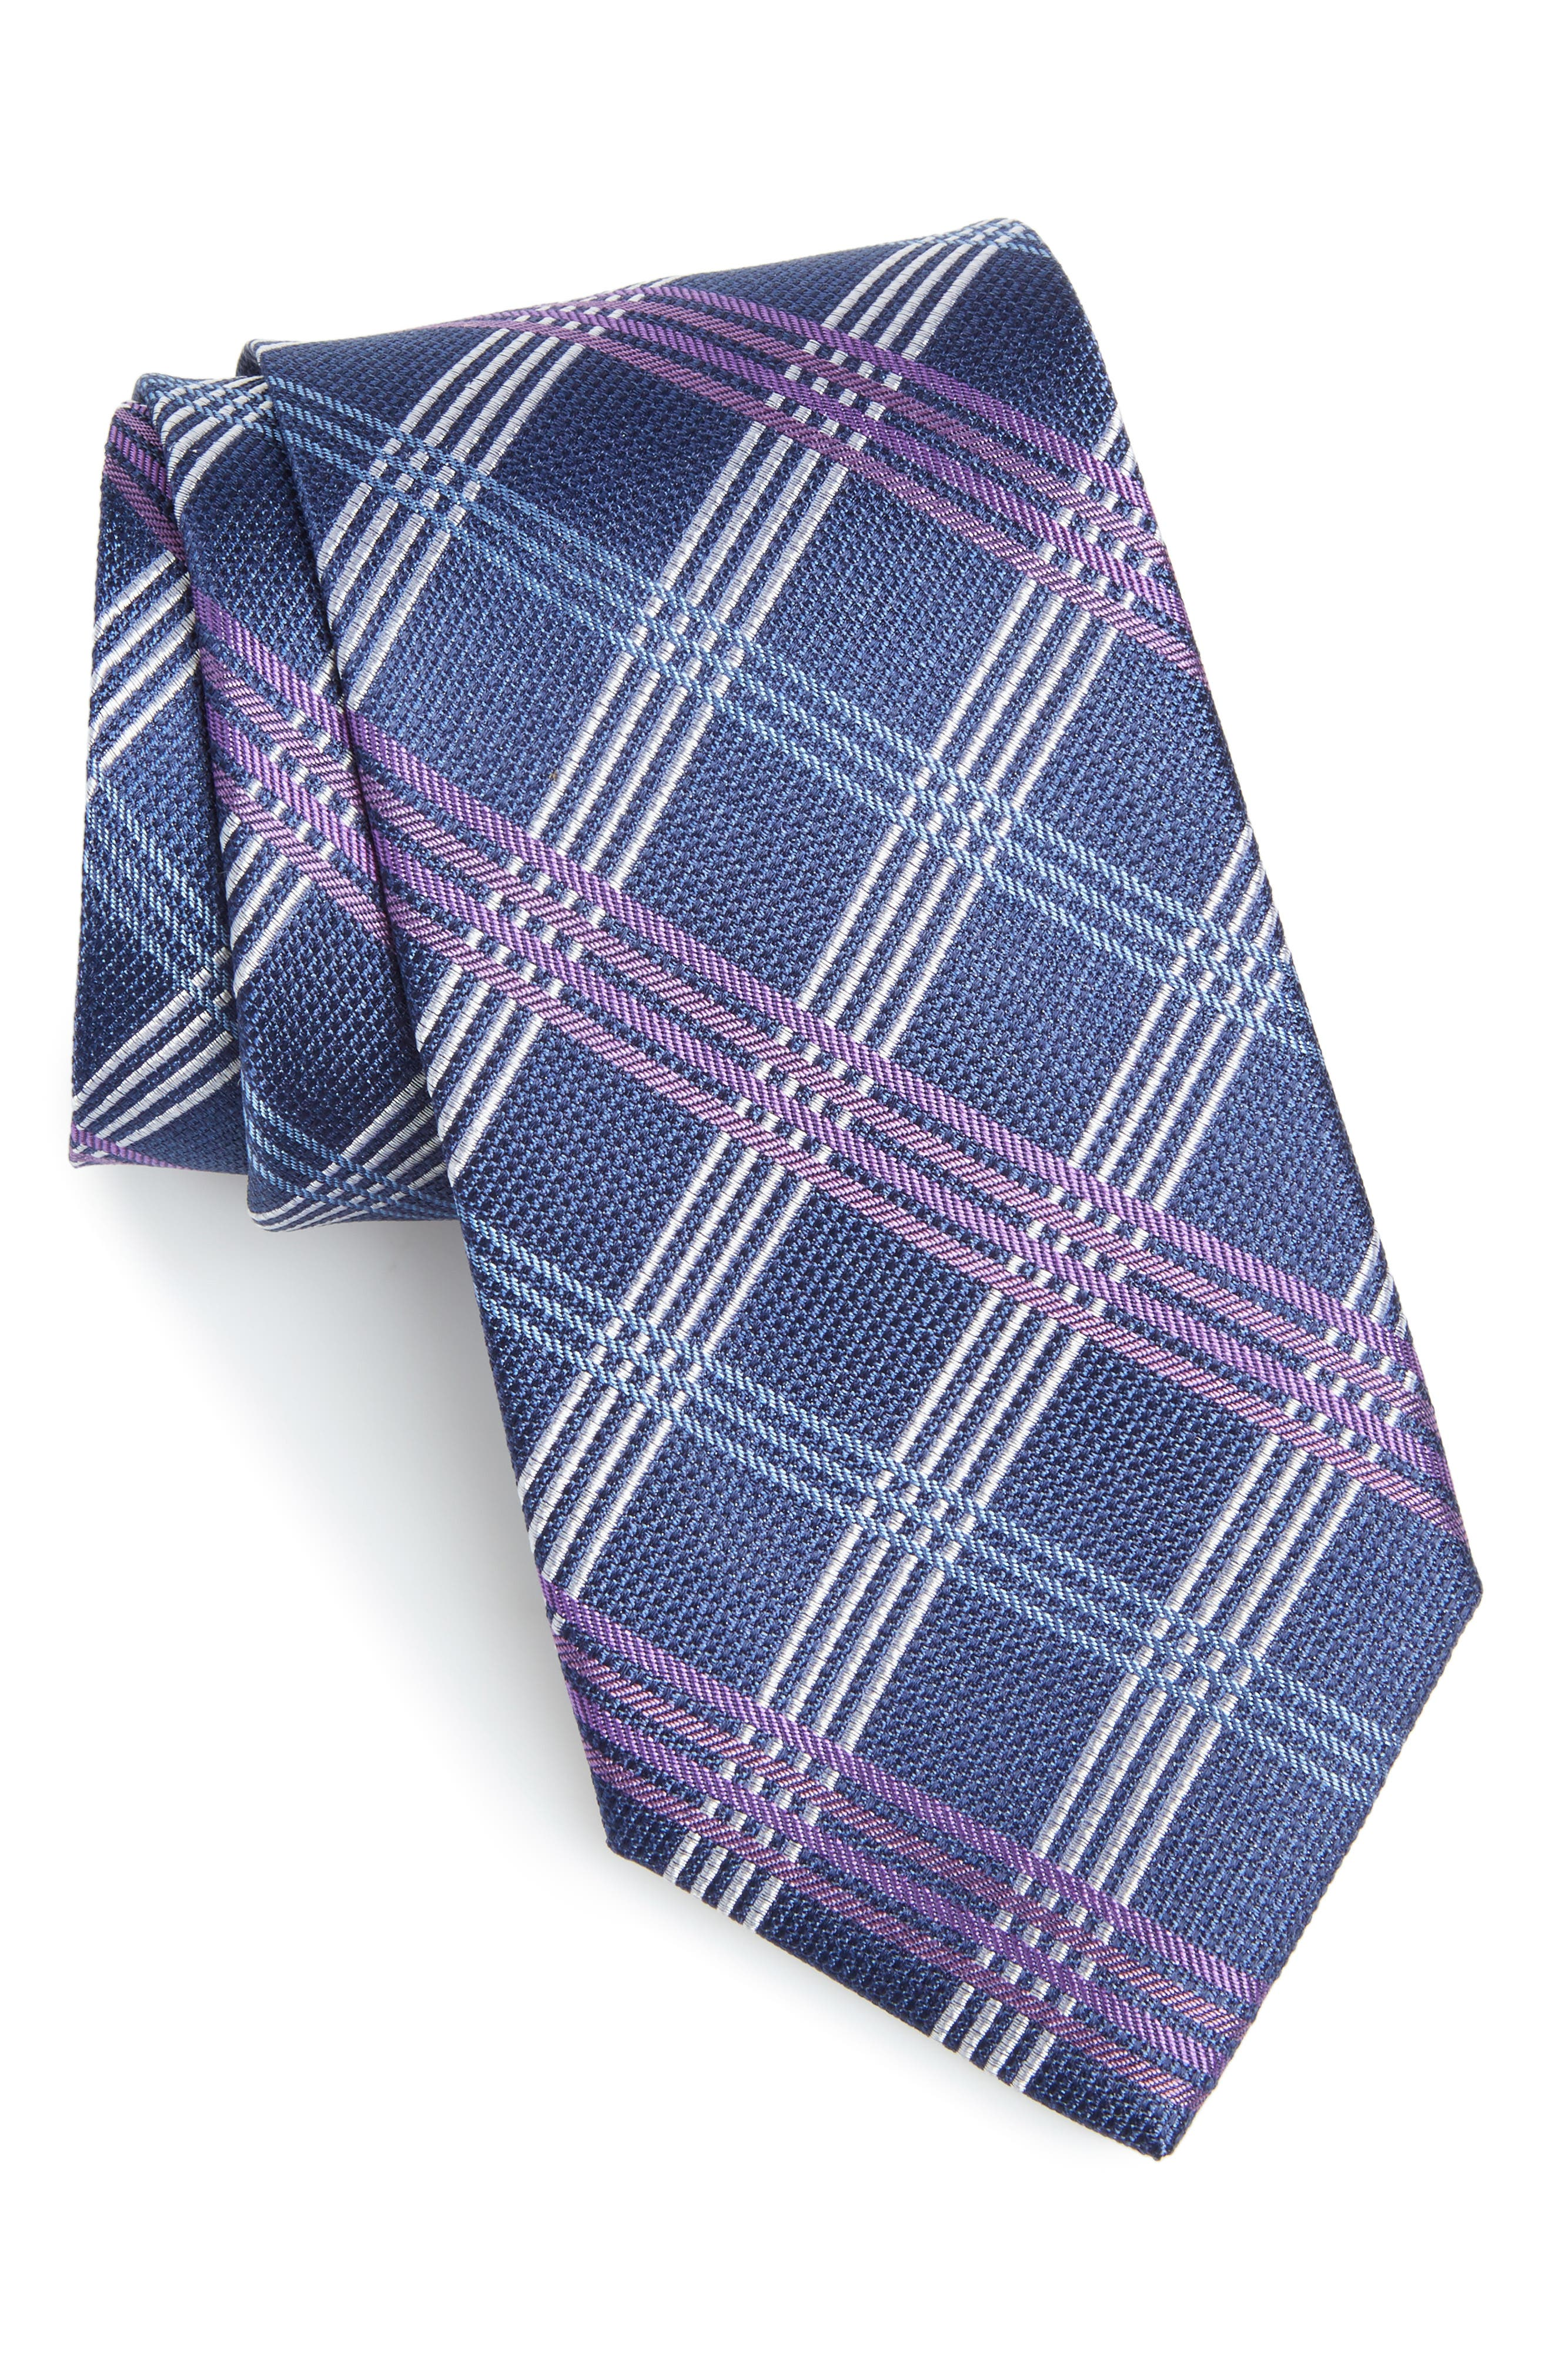 Nordstrom Men's Shop Plaid Silk Tie